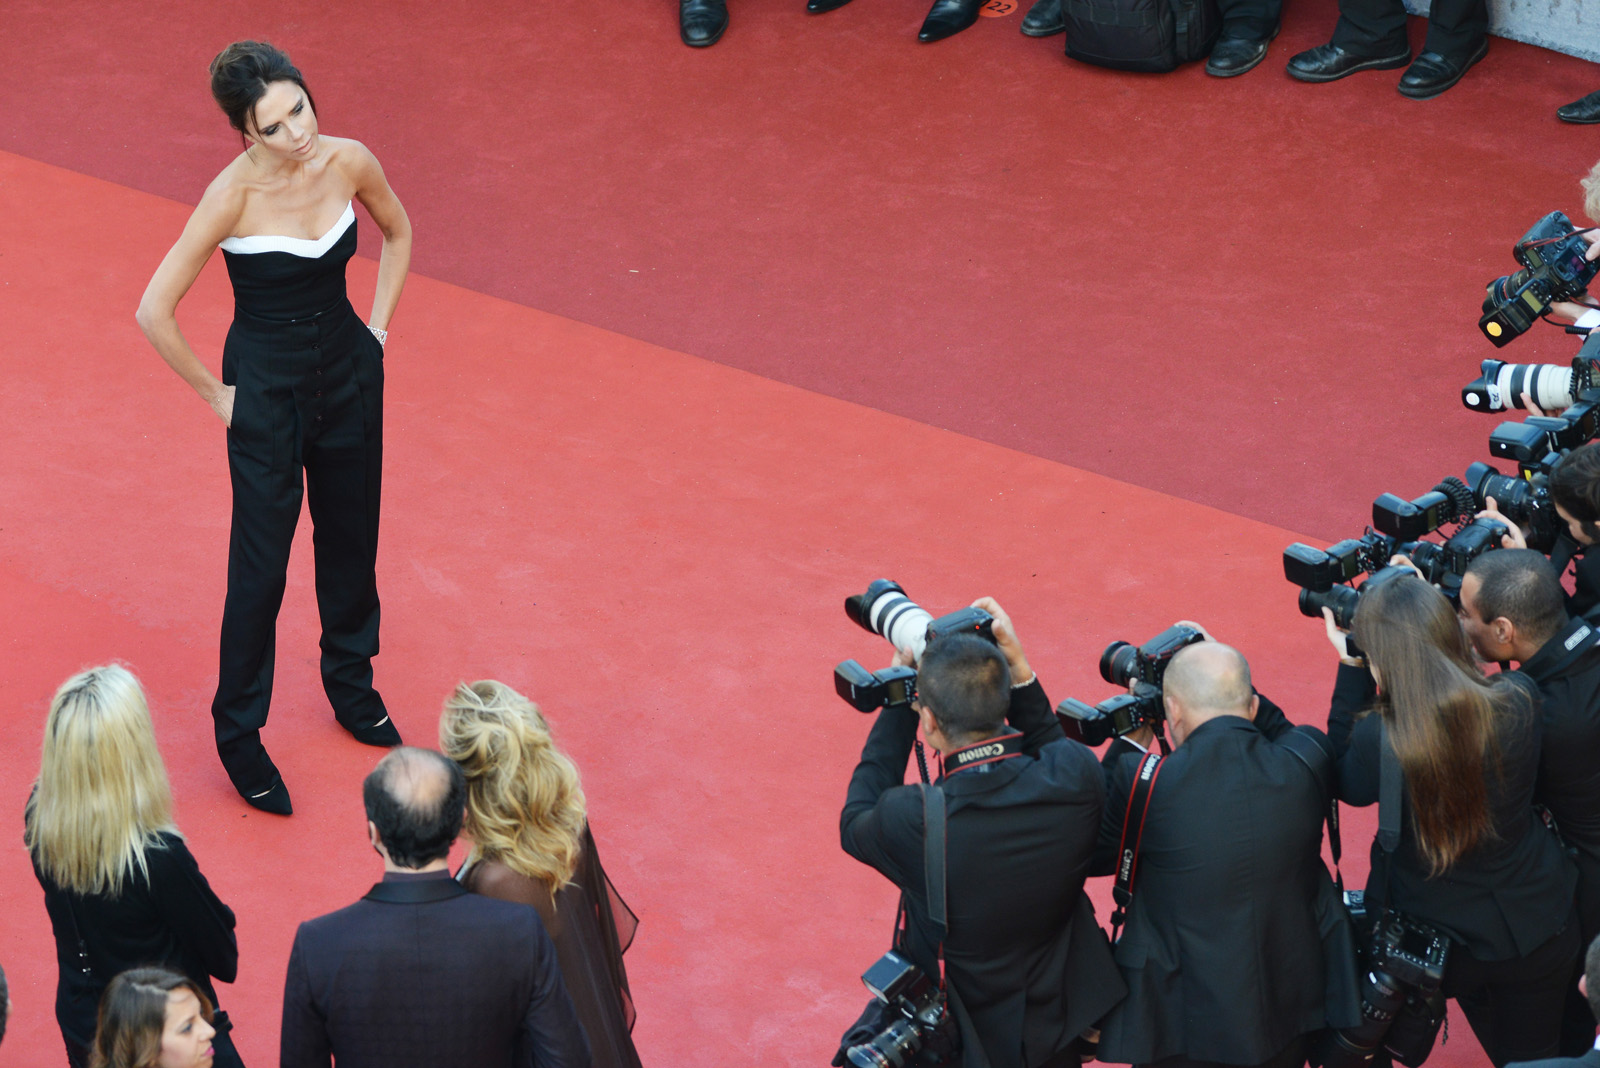 """CANNES, FRANCE - MAY 11: Victoria Beckham attends the """"Cafe Society"""" premiere and the Opening Night Gala during the 69th annual Cannes Film Festival at the Palais des Festivals on May 11, 2016 in Cannes, France.  (Photo by Pool/Getty Images)"""